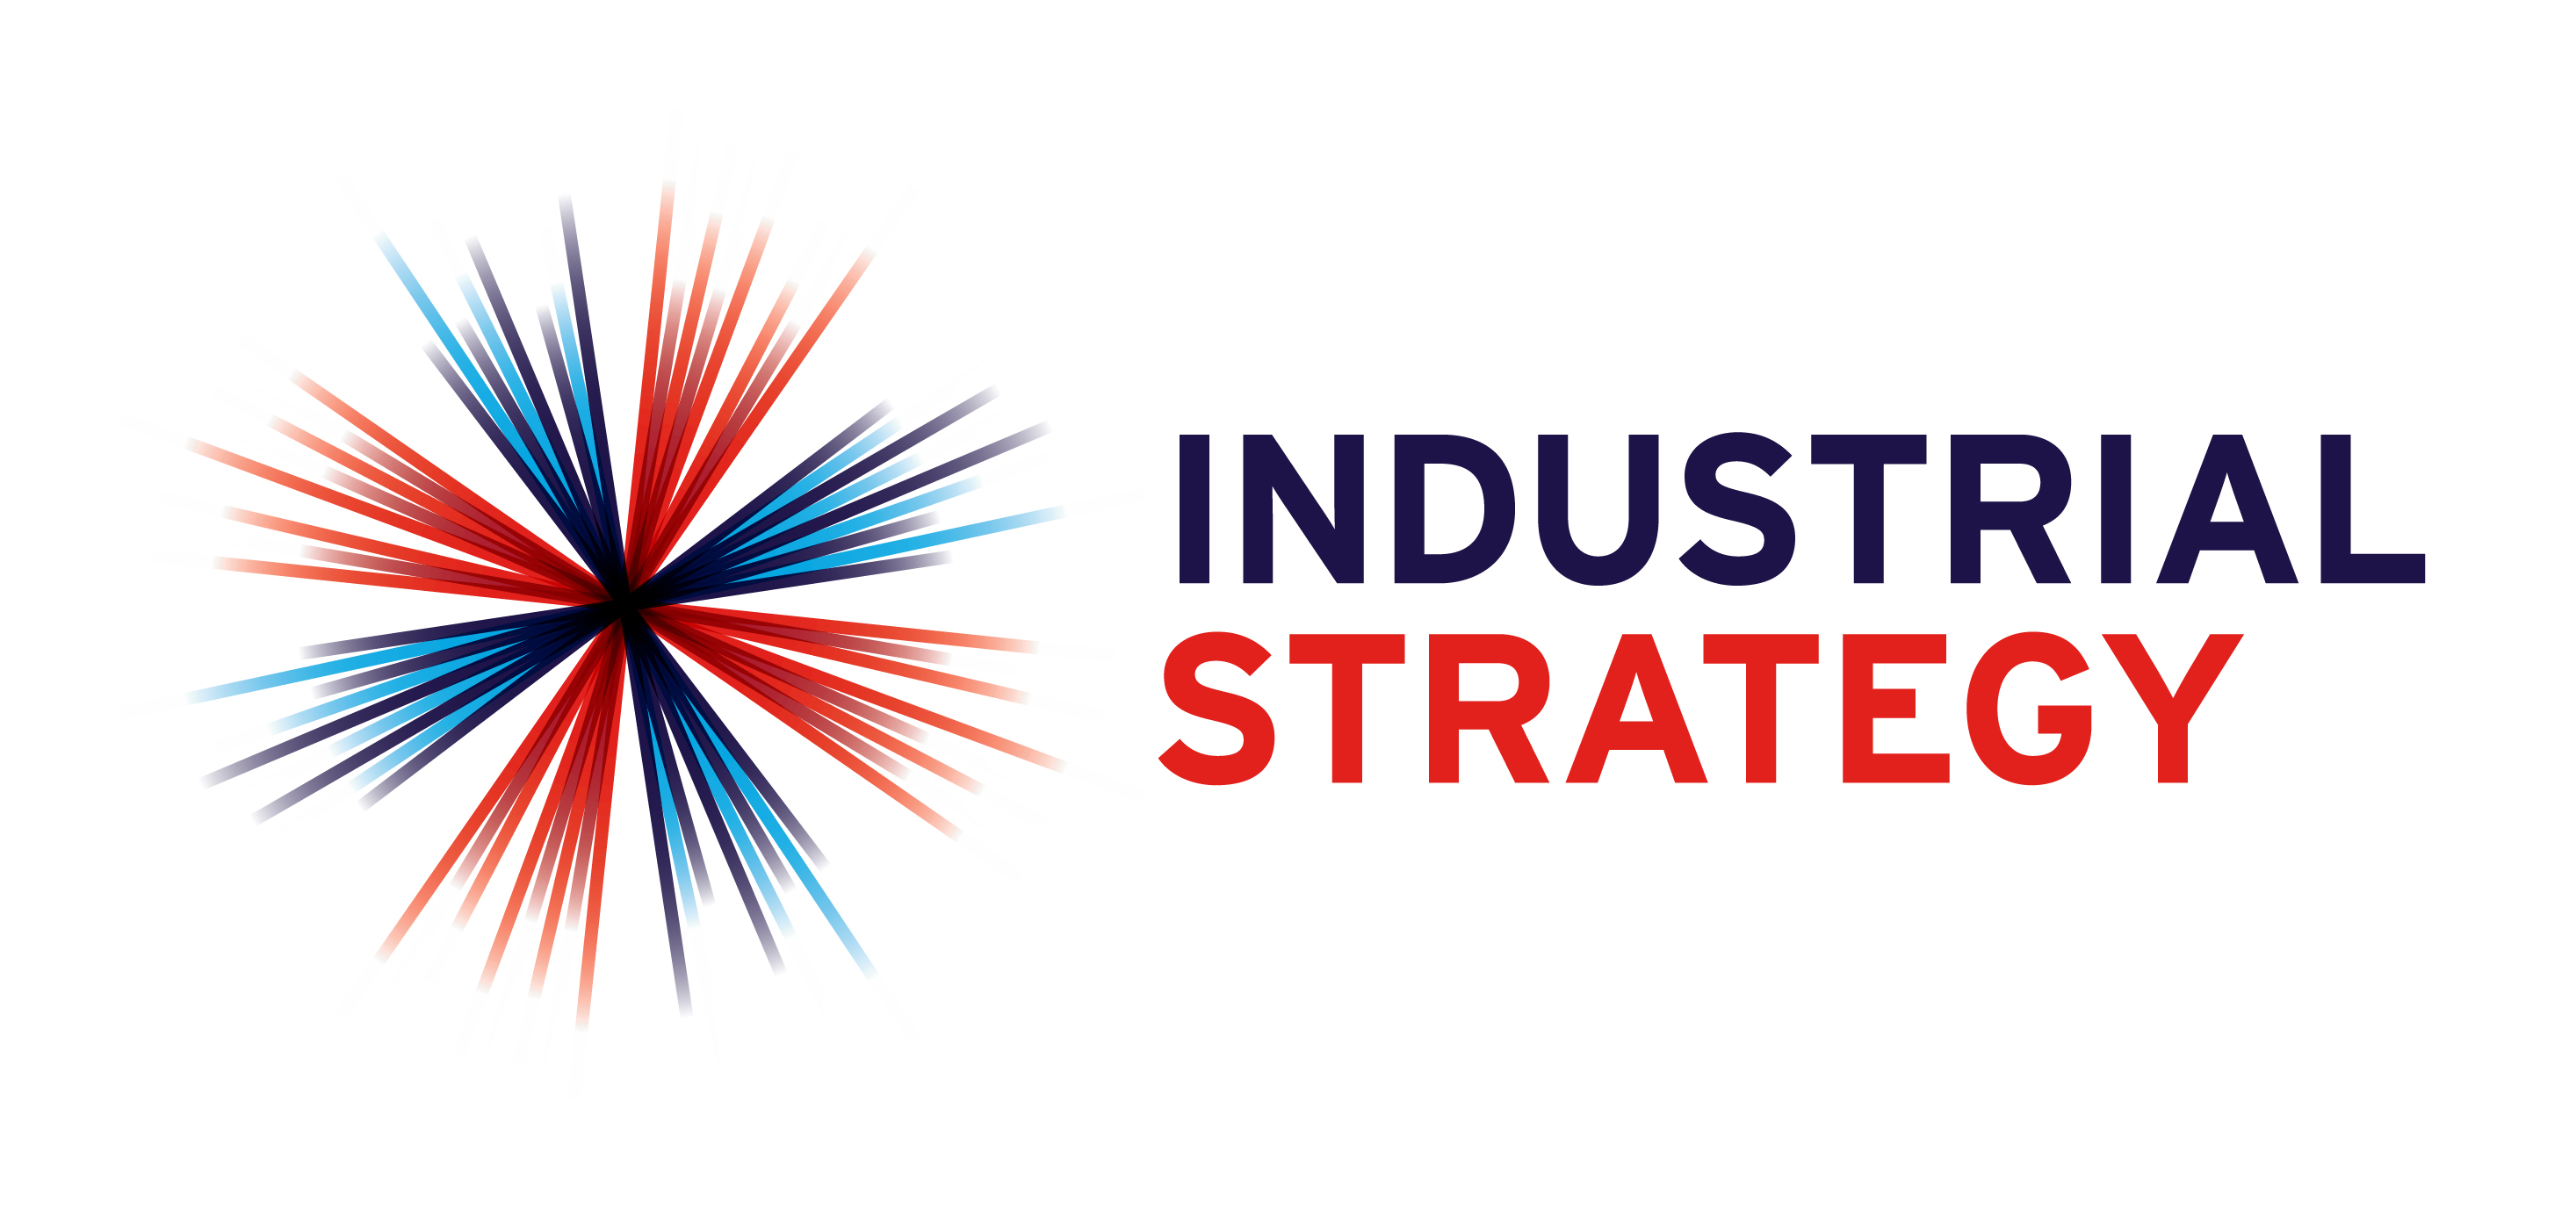 2019-05/1557996817_industrial-strategy-logo-2-